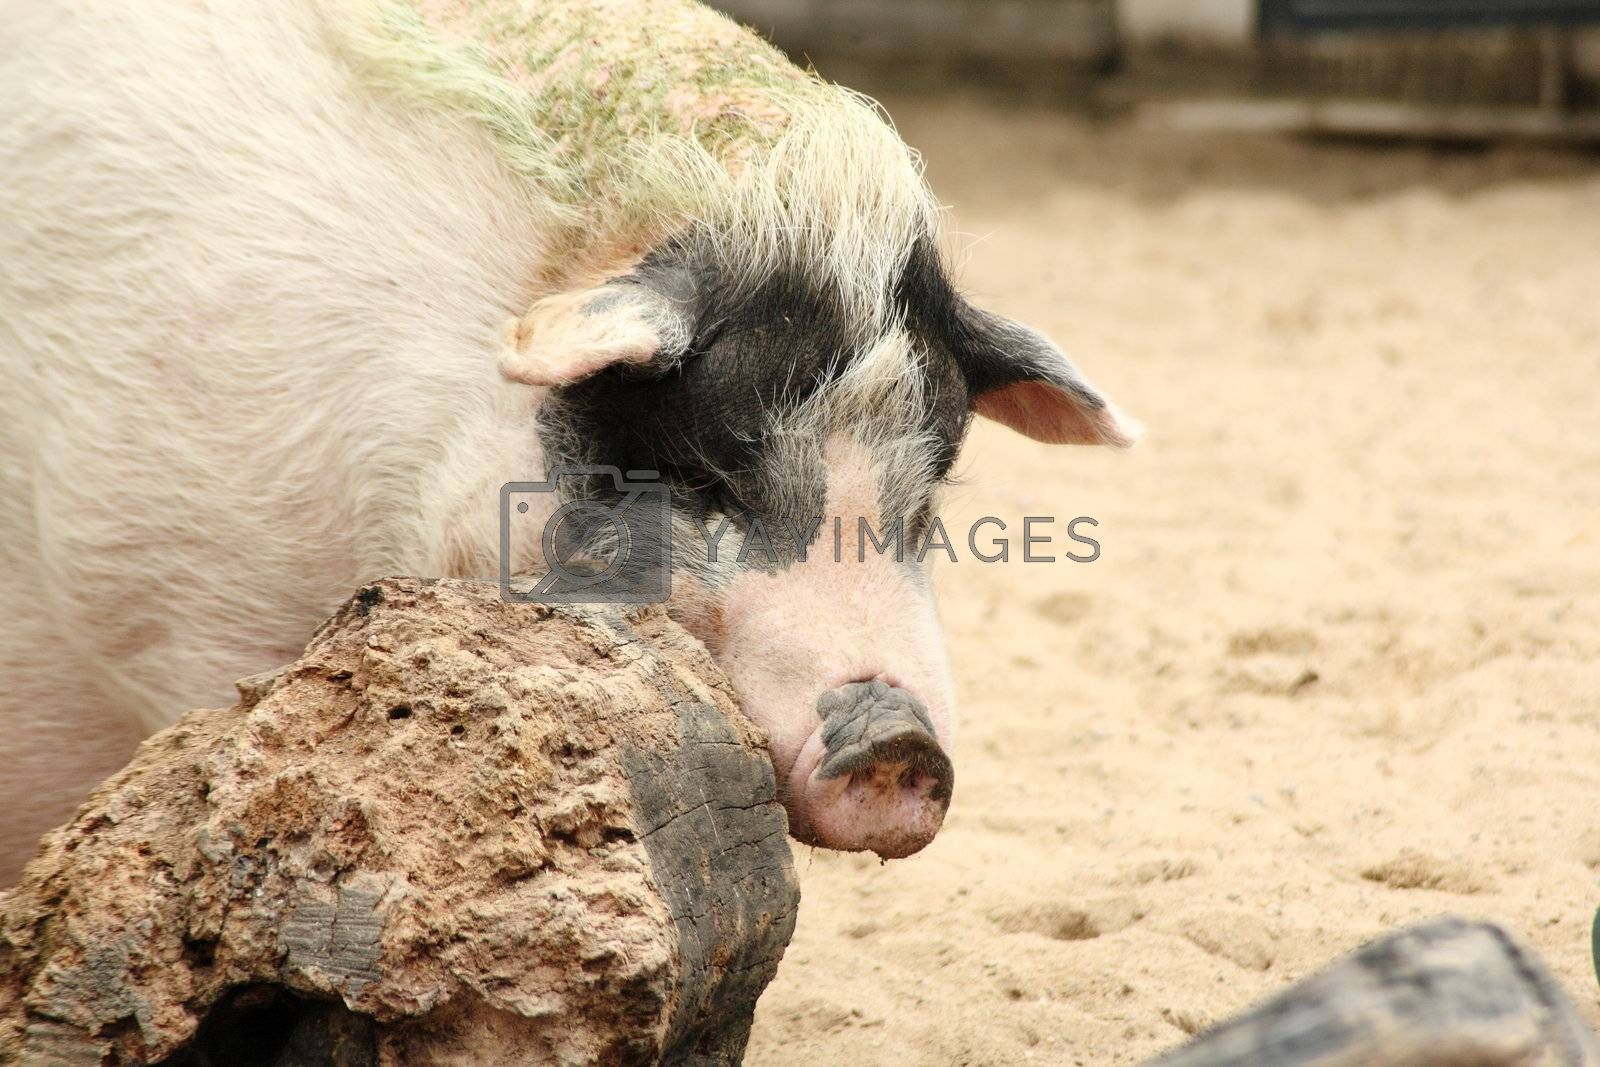 Royalty free image of pig by leungchopan